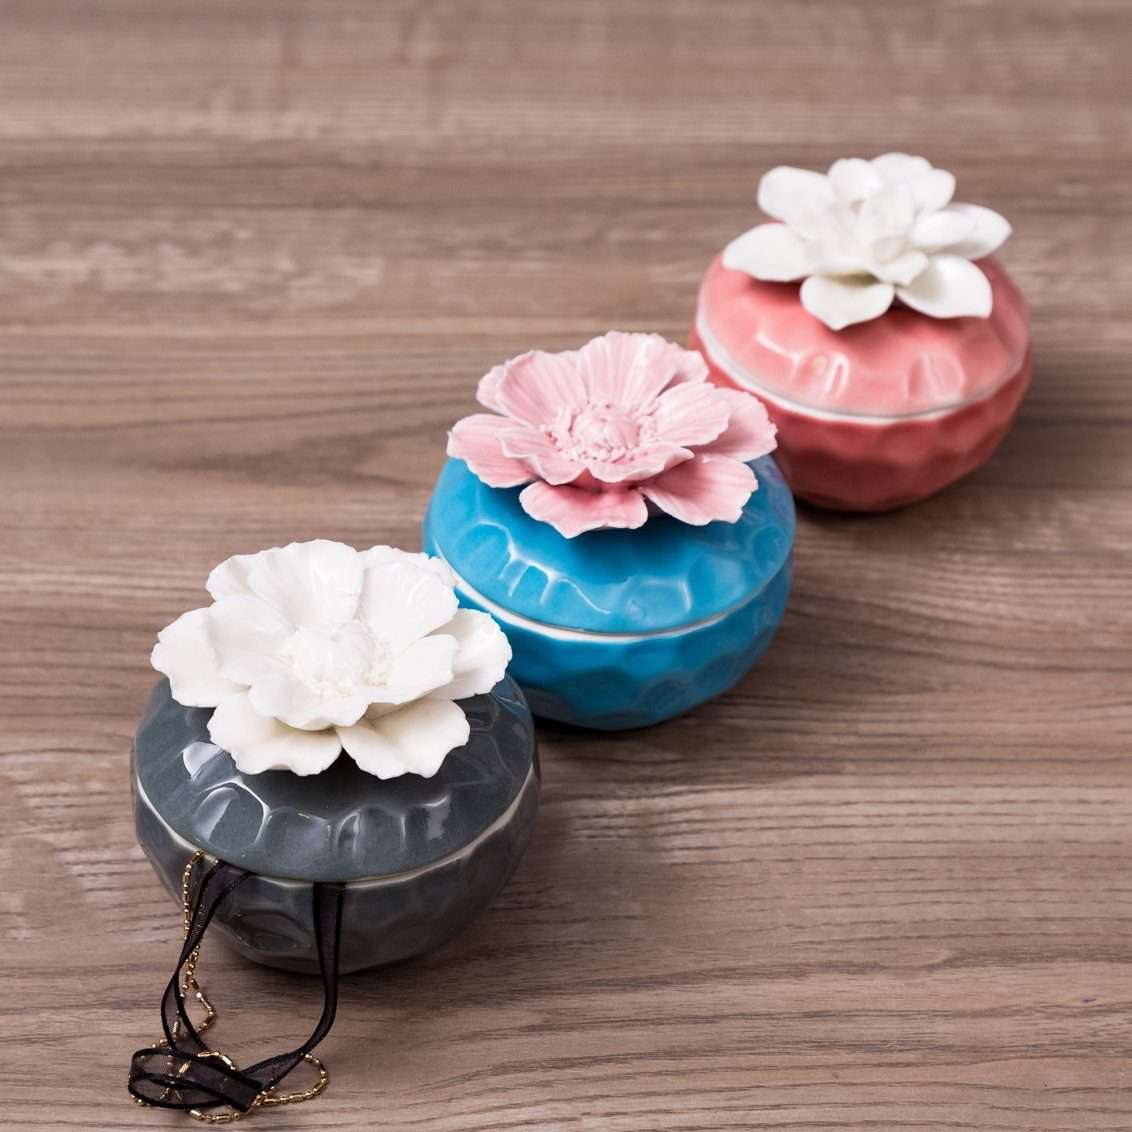 Magnolia - Duo Coloured Trinket Keepers - Set of 3